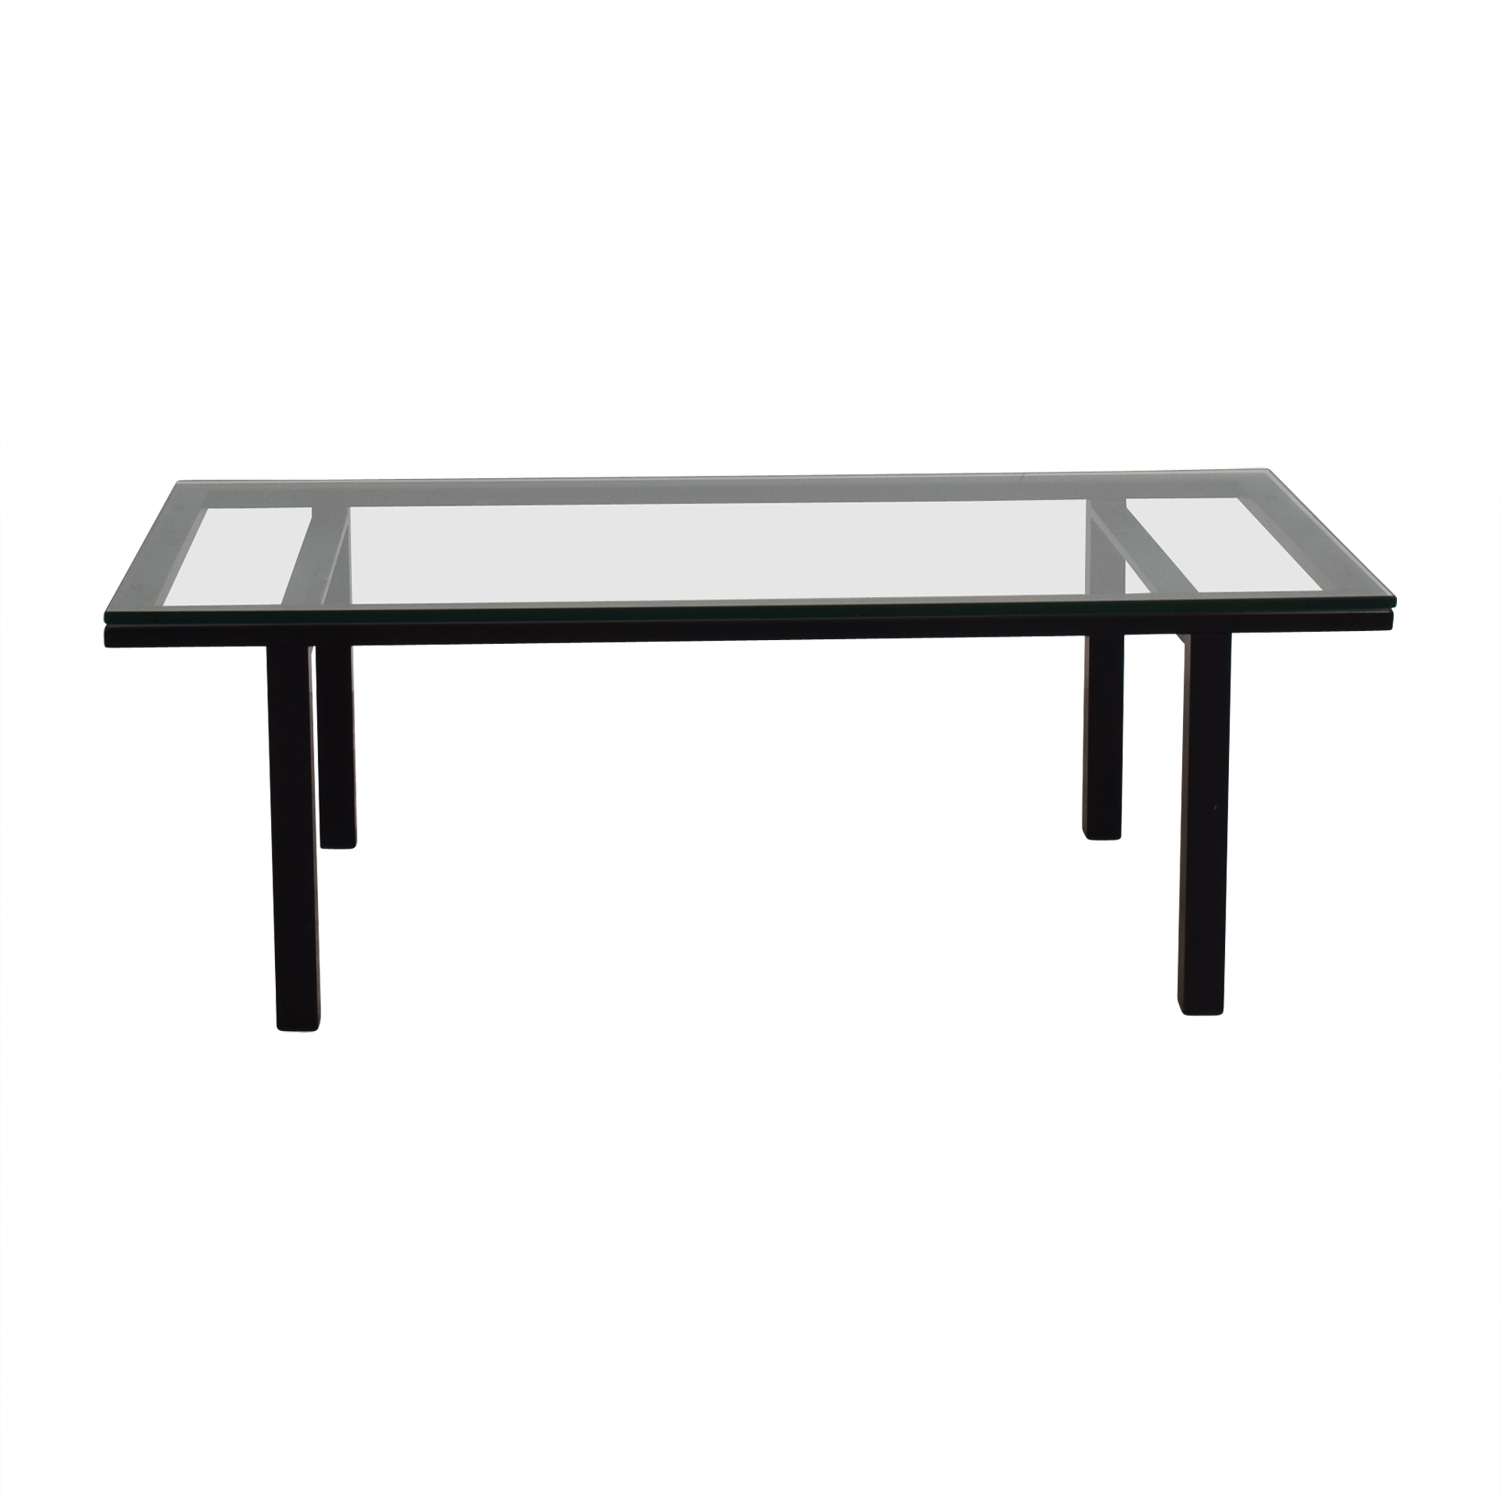 Rectangular Glass and Black Coffee Table dimensions